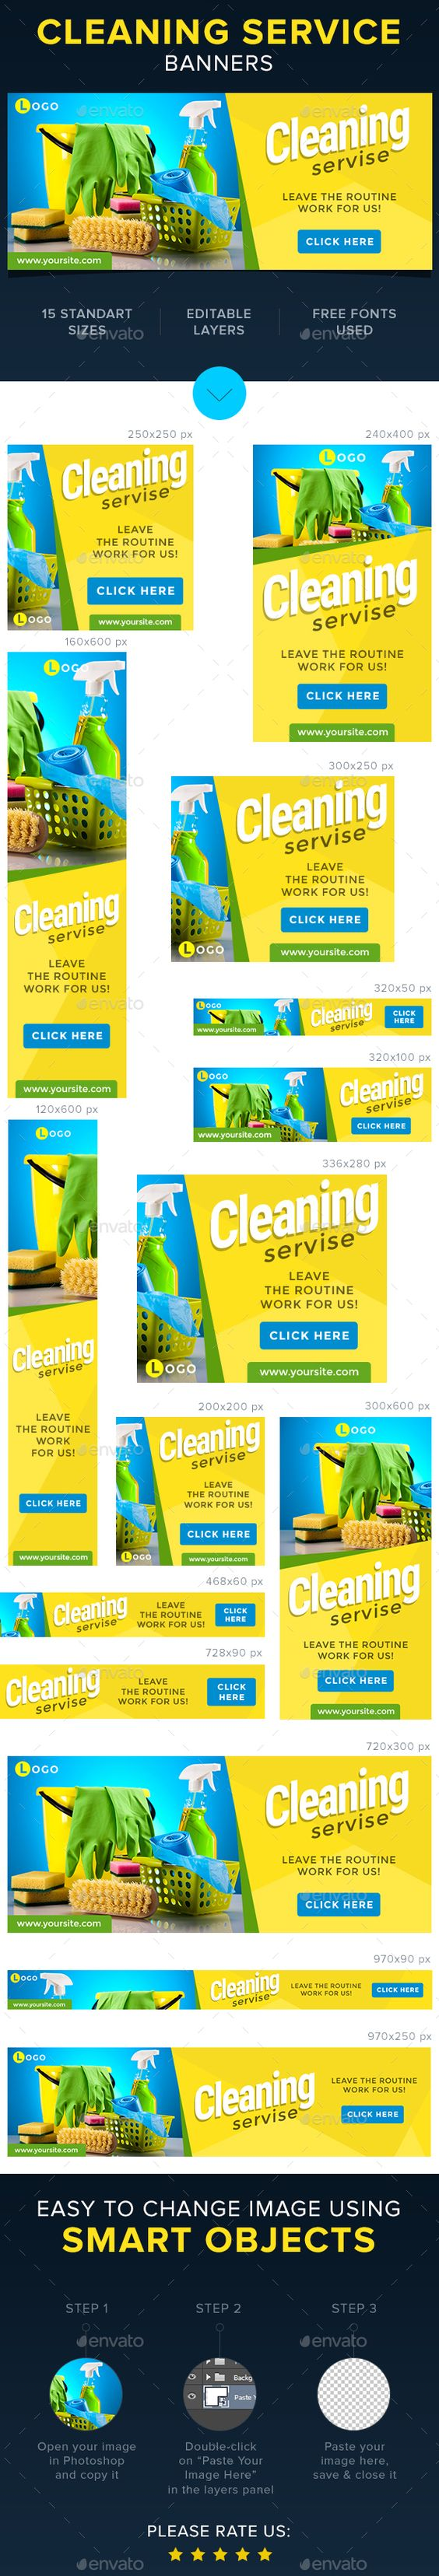 cleaning servise banners banners web design and cleaning cleaning servise banners photoshop psd google adwords web advertising available here rarr